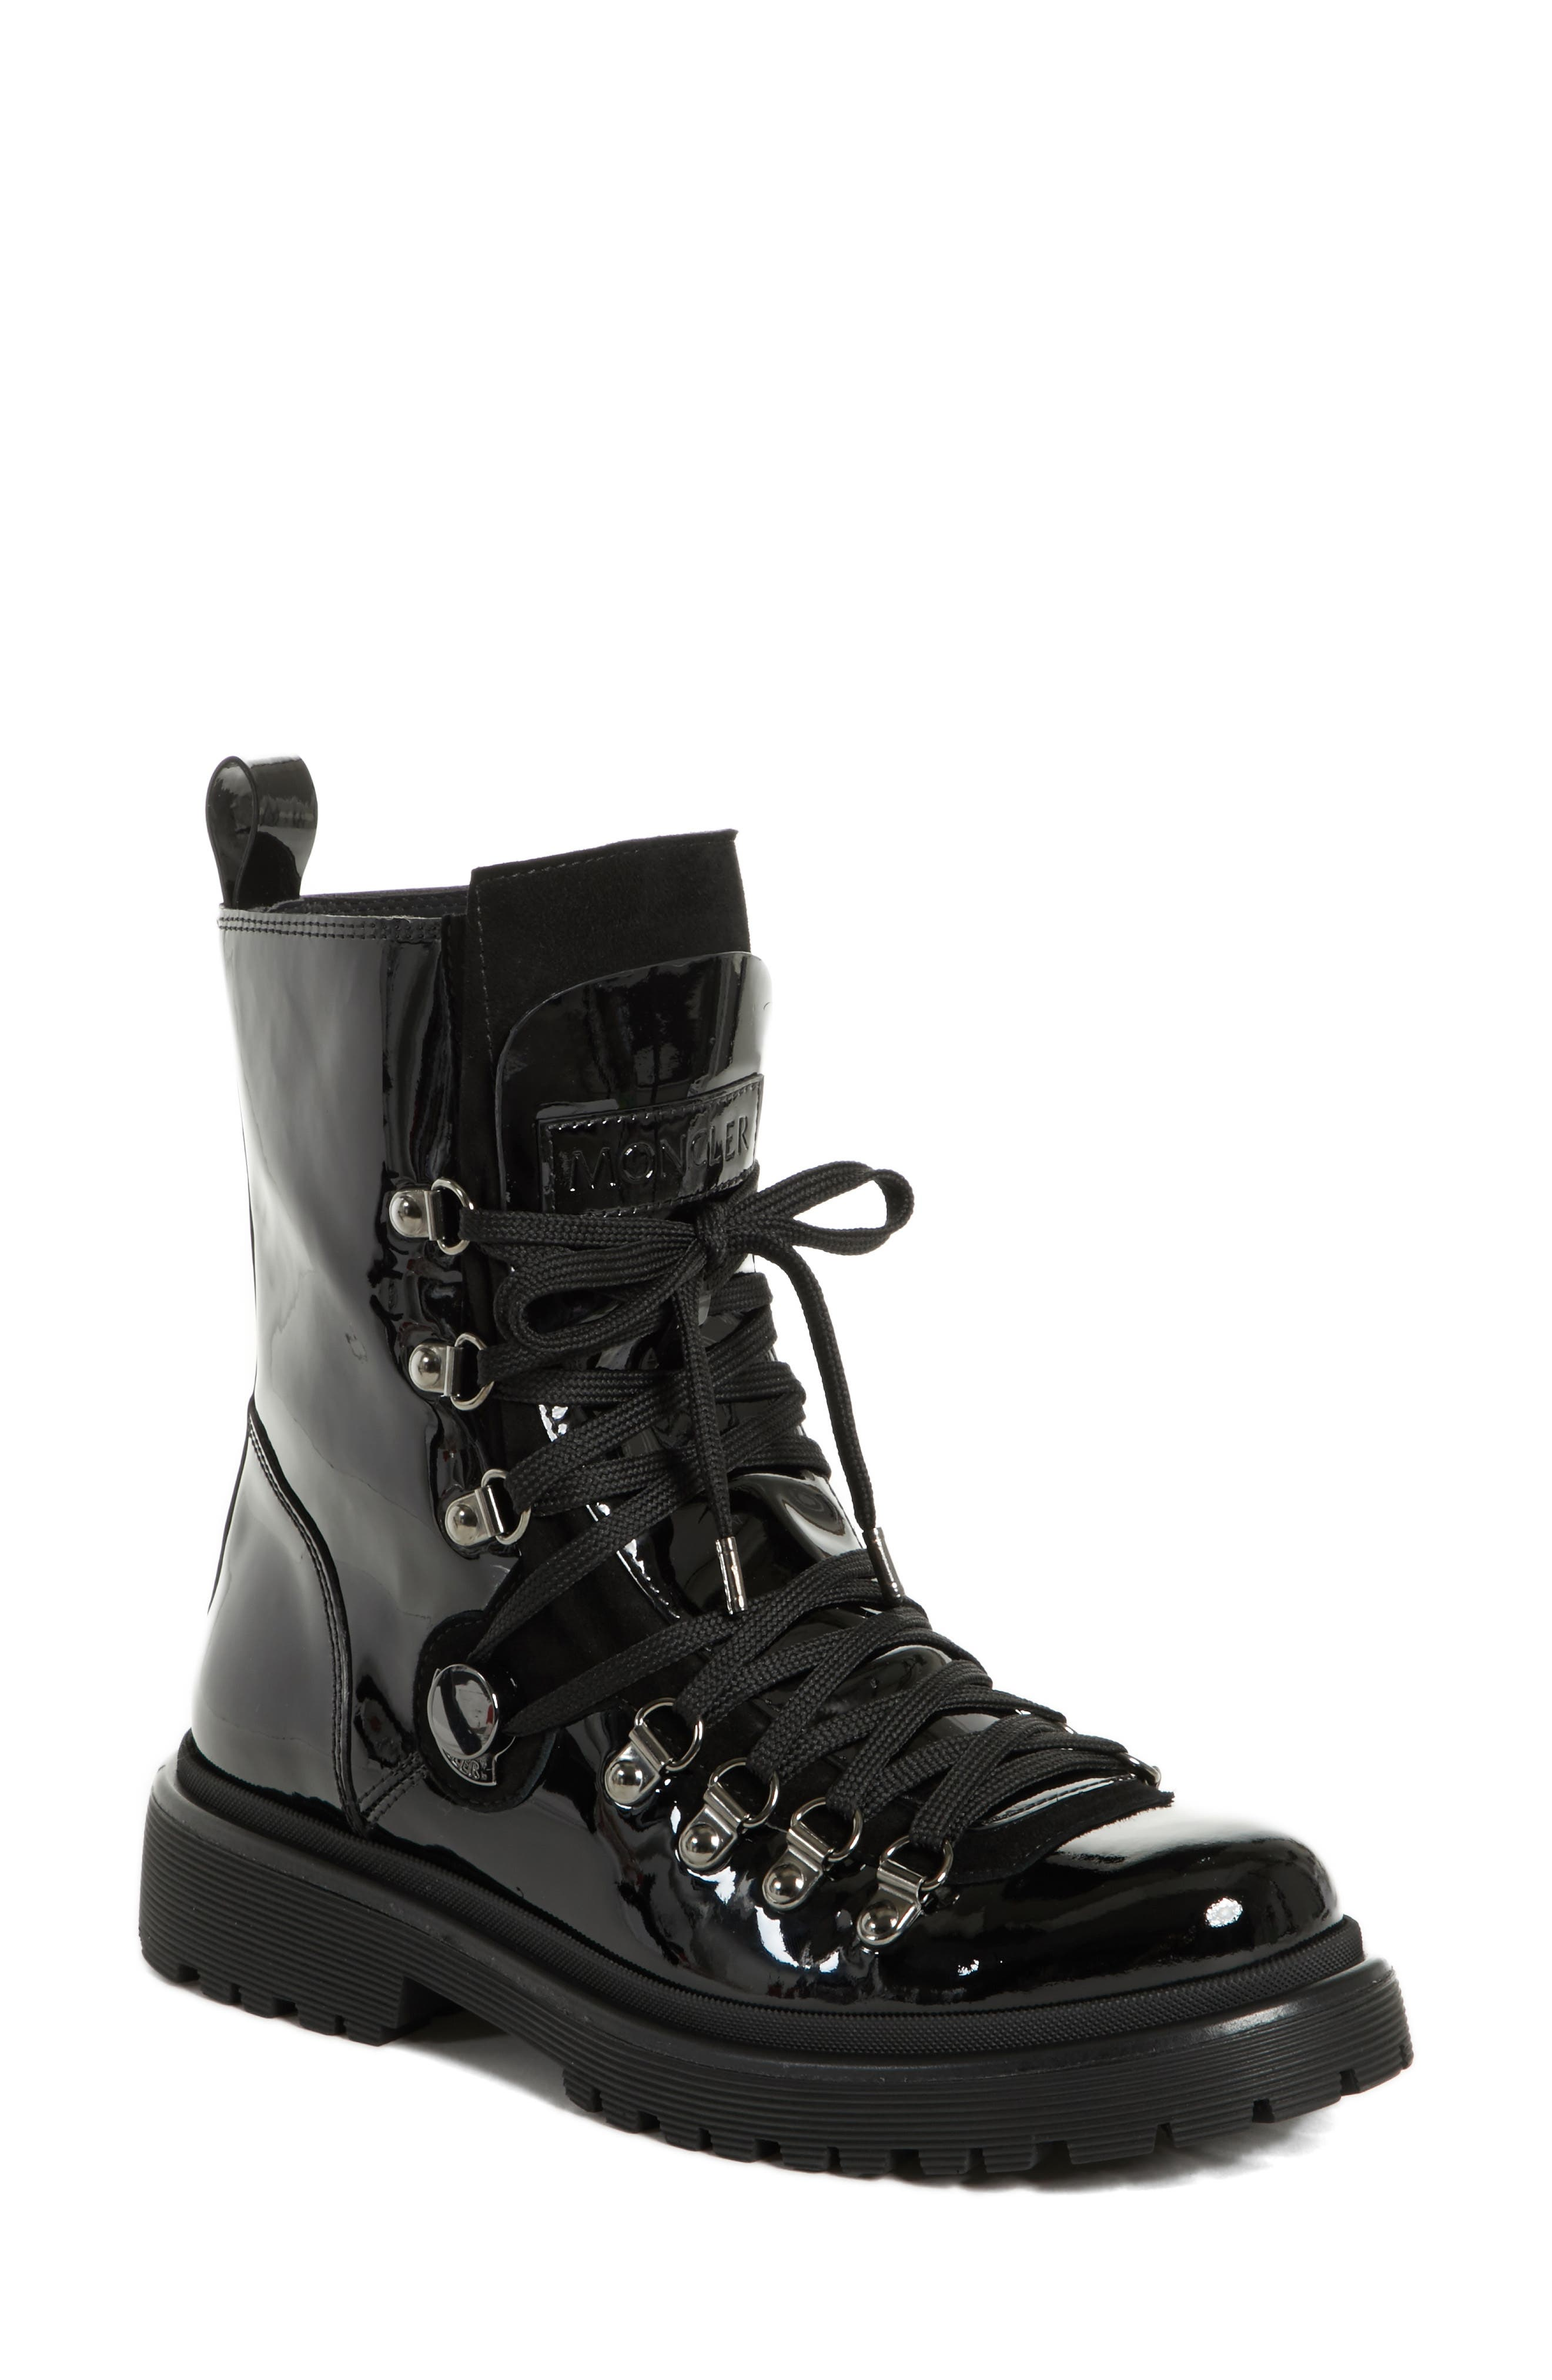 Moncler Berenice Stivale Lace-Up Boot (Women)